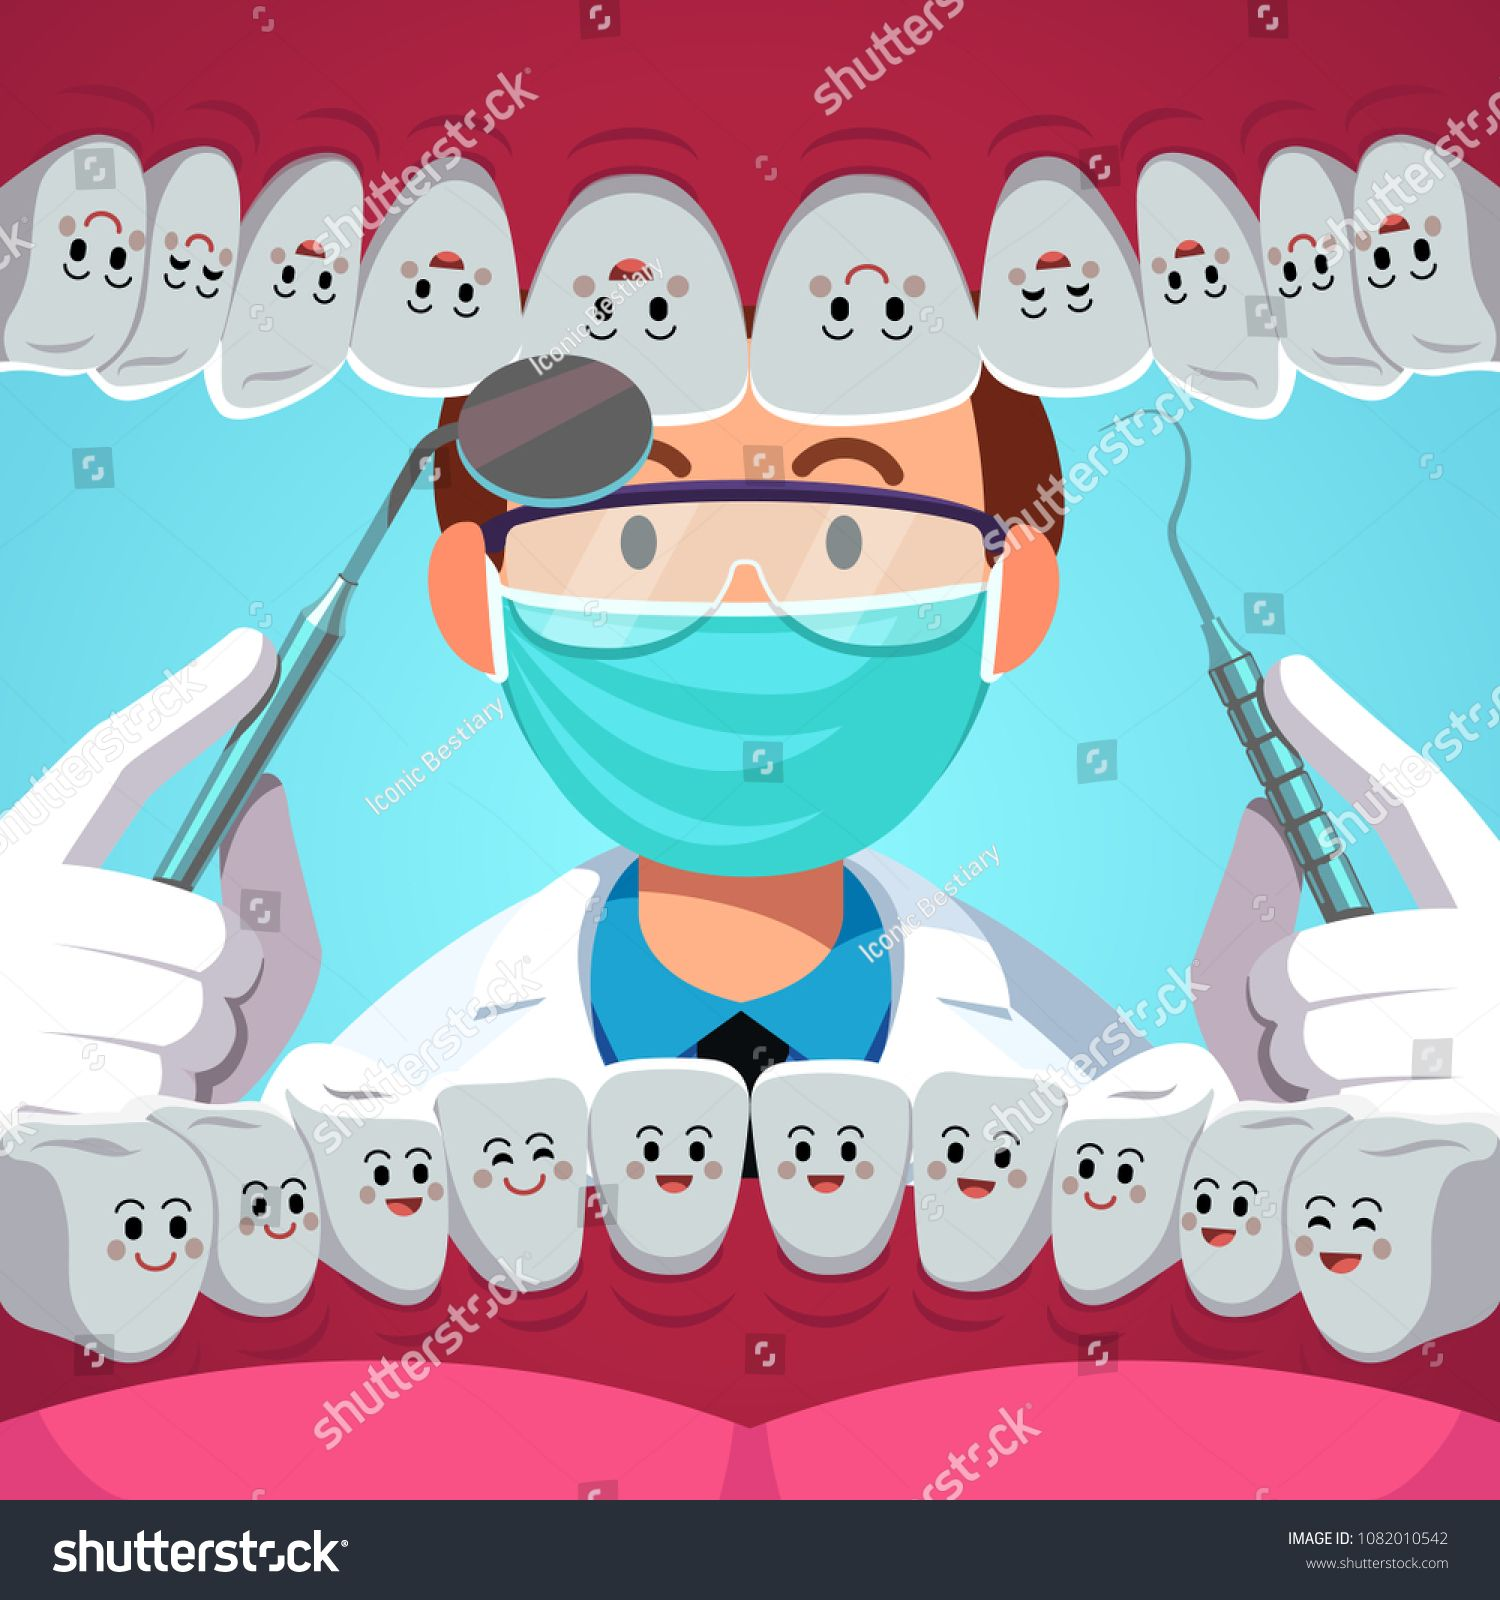 Dentist holding instruments examining teeth. Patient mouth